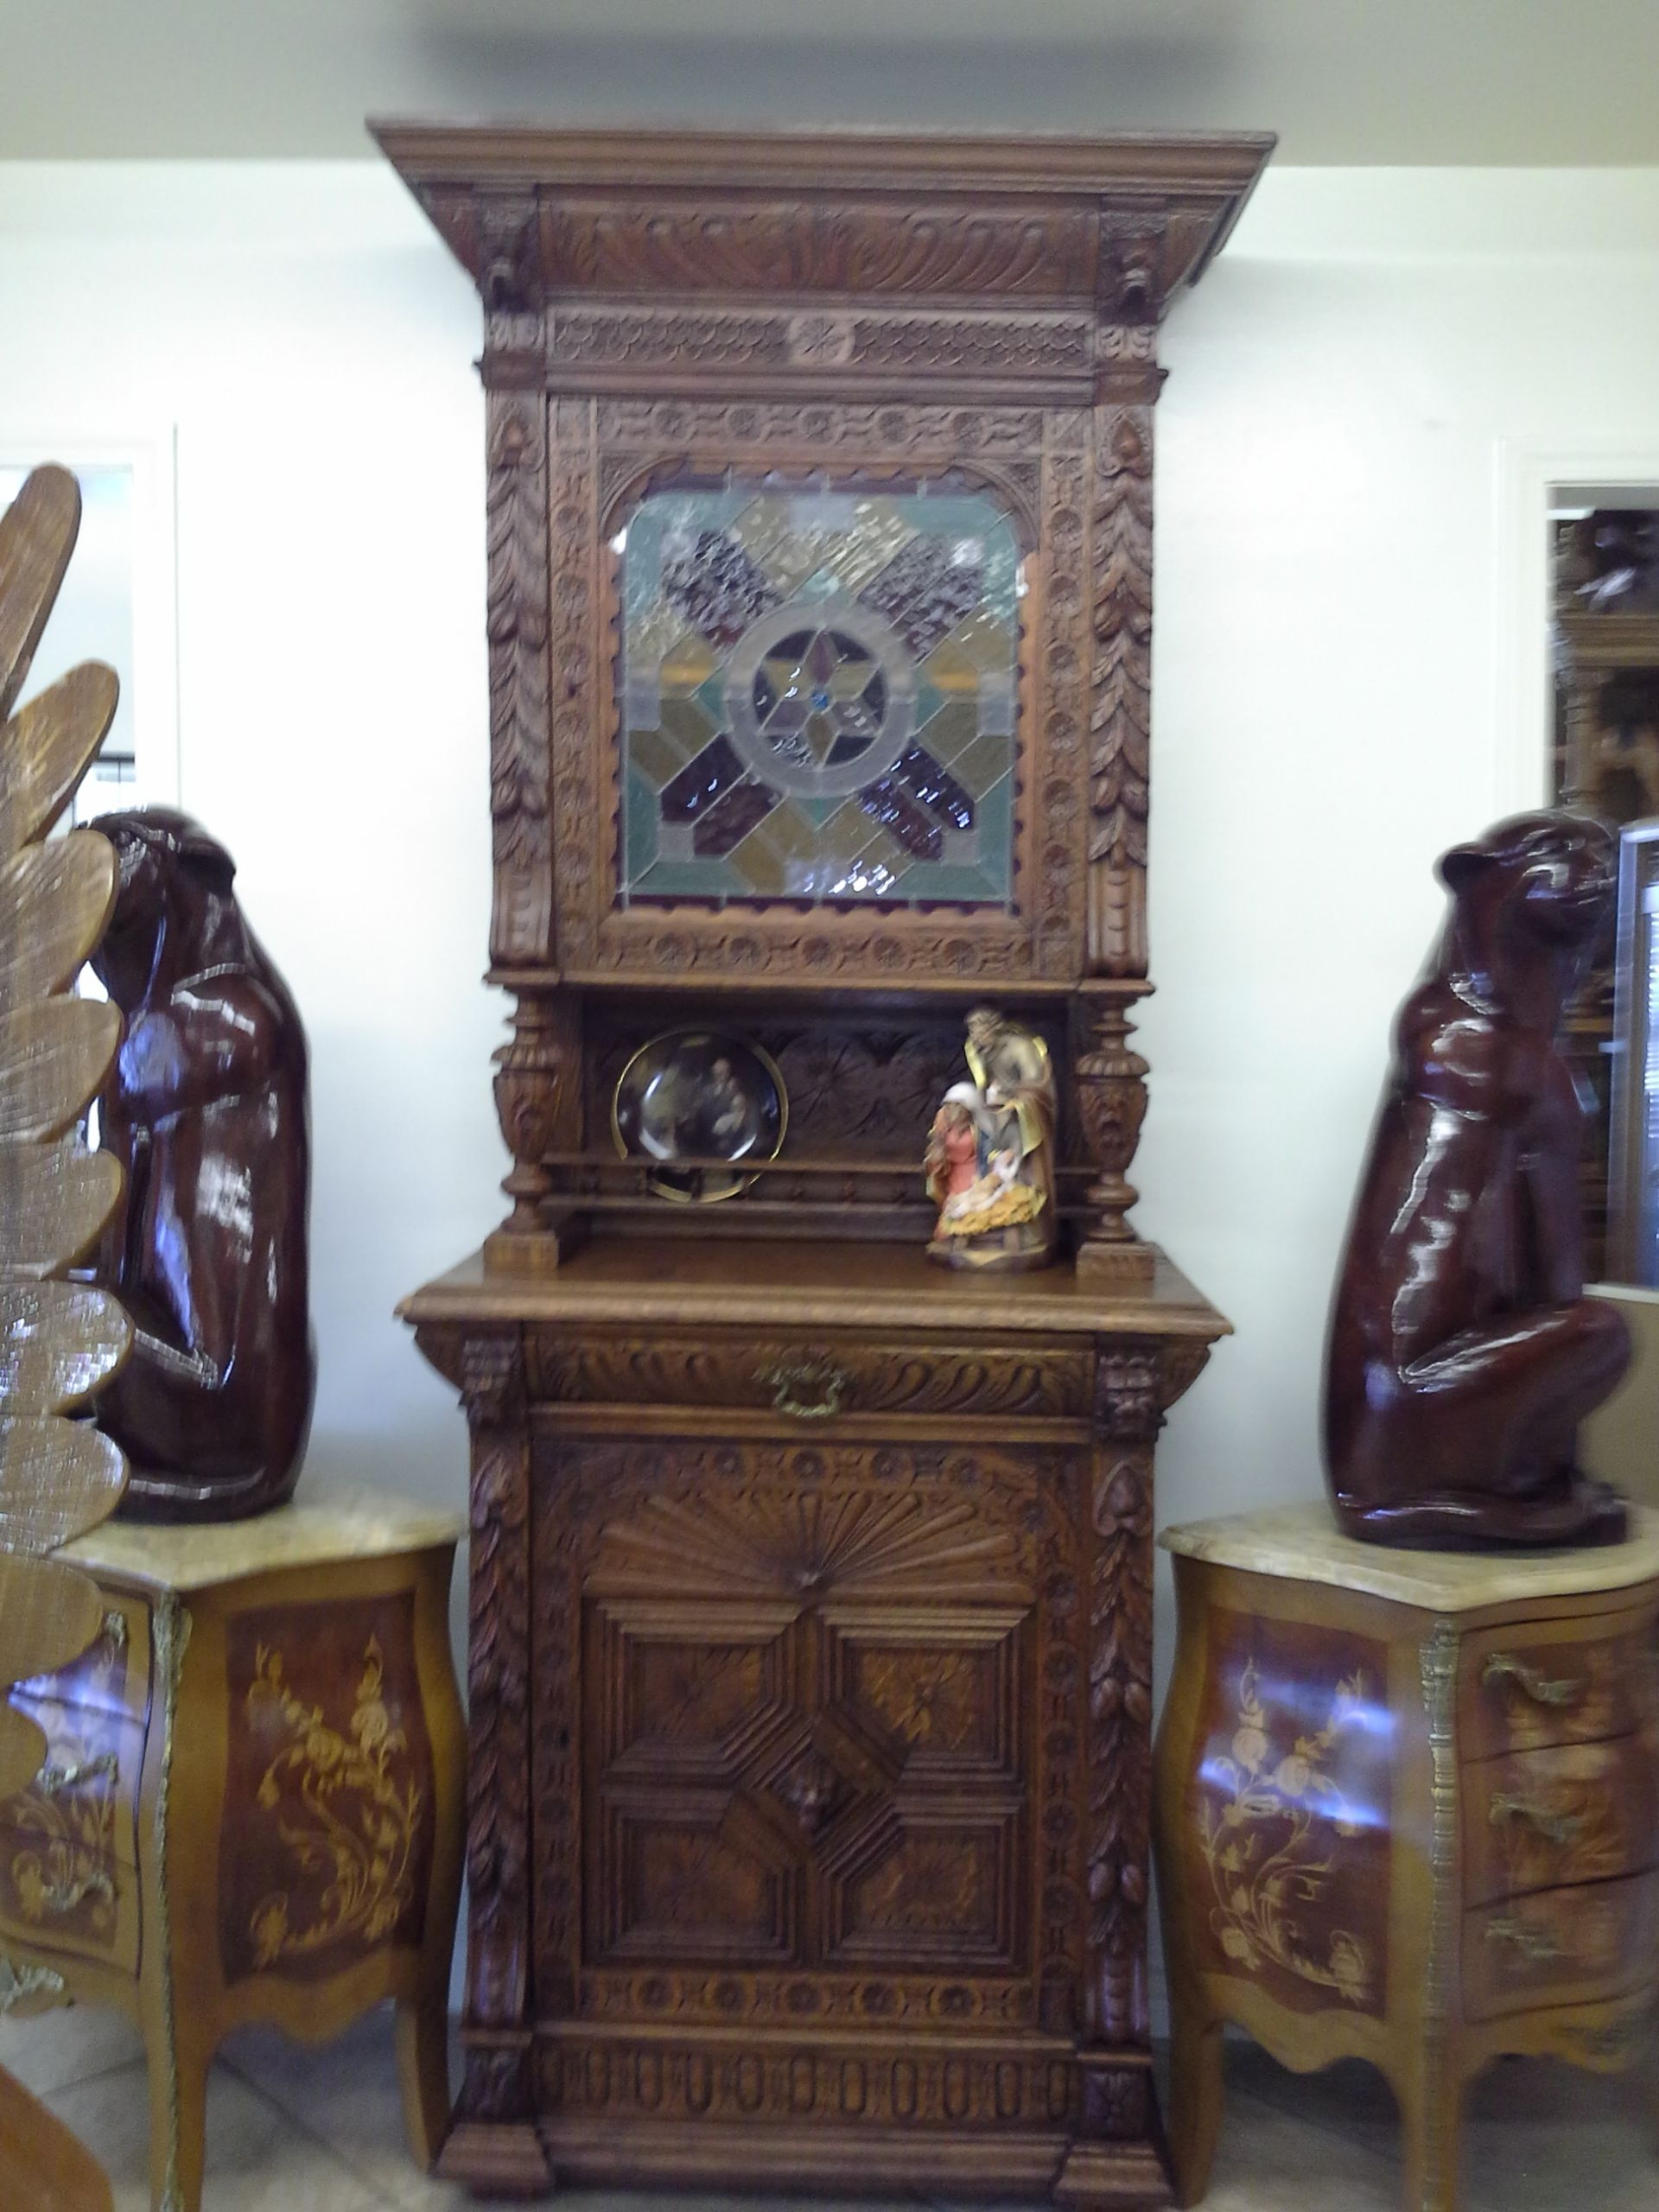 King S Gallery Antiques Art Curiosities Antiques Antique Art Art